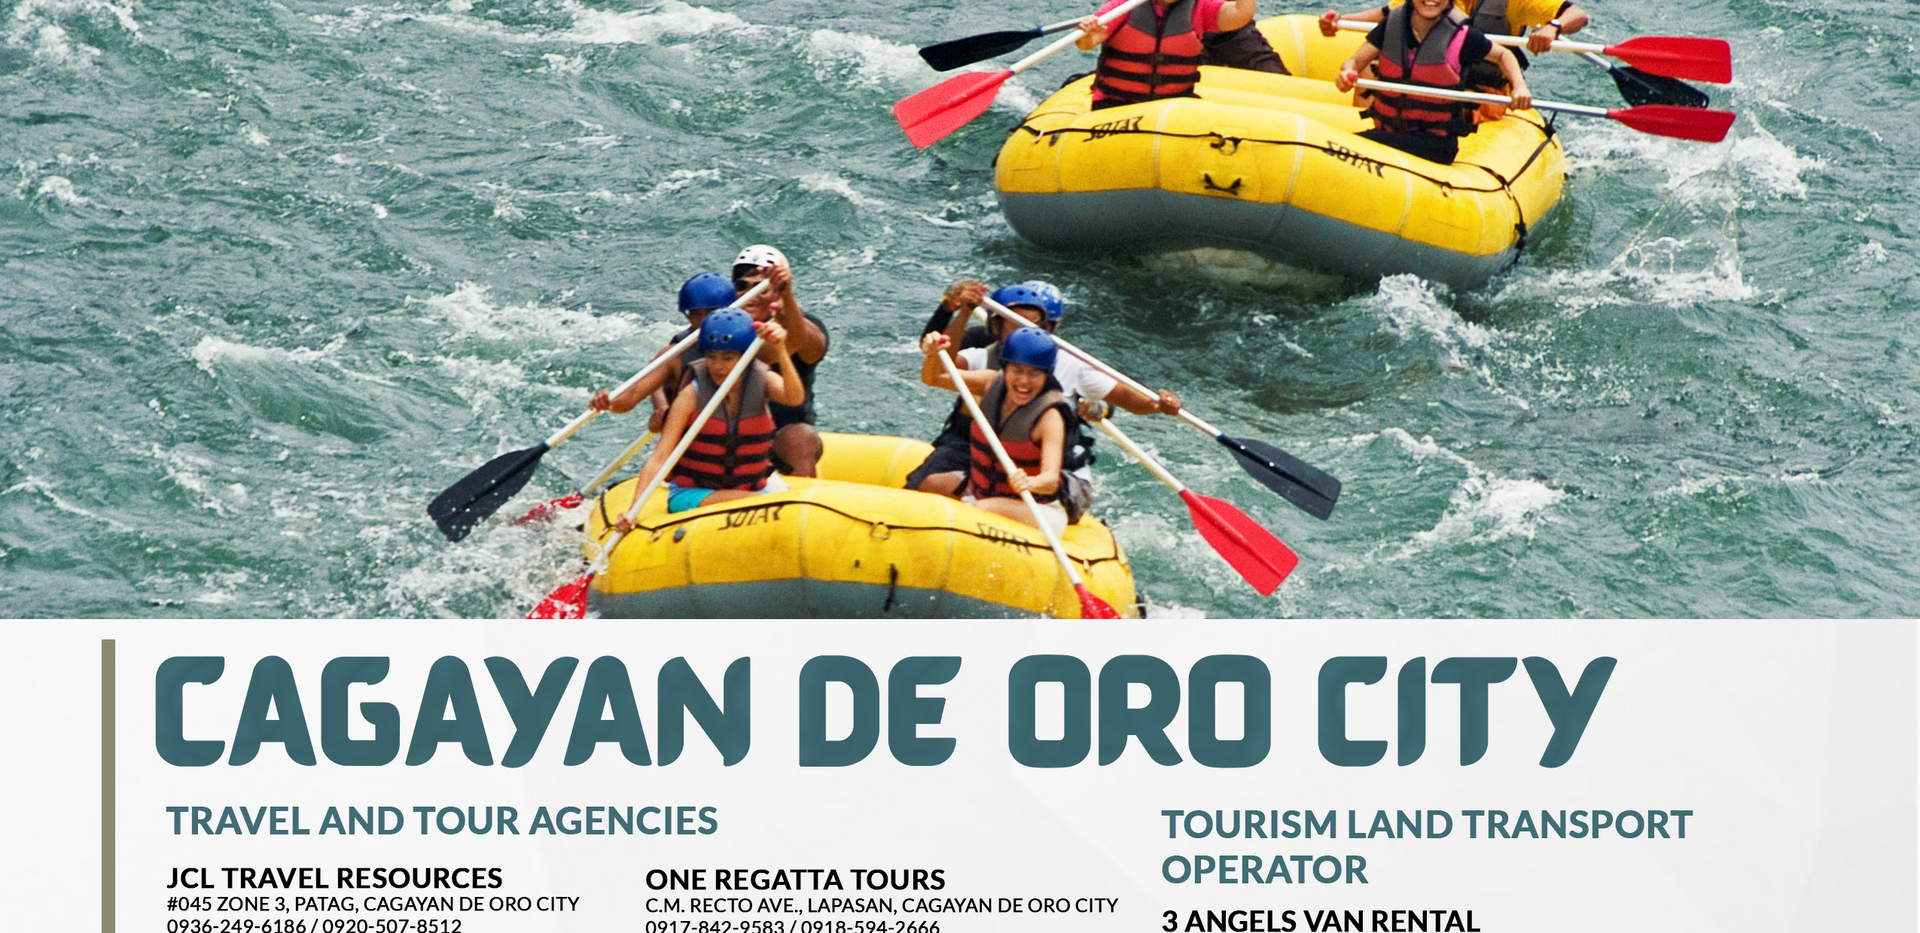 Cagayan de Oro Accred Poster 3.2.png